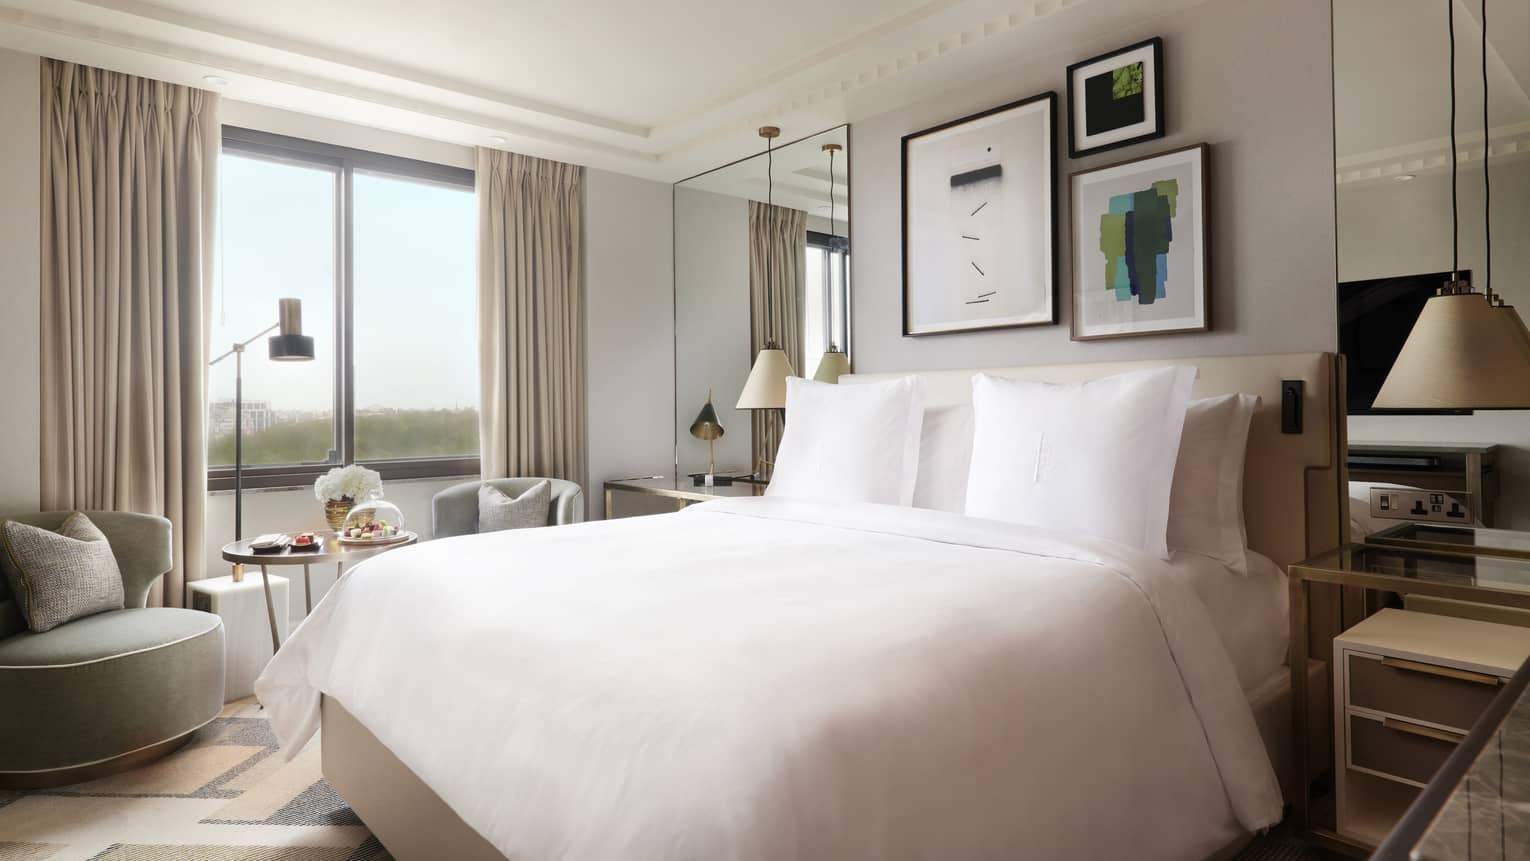 Floor to ceiling windows let light into the Superior King room, furnished with a cream colored modern king bed, modern egg-shaped gray chair, modern prints on the wall